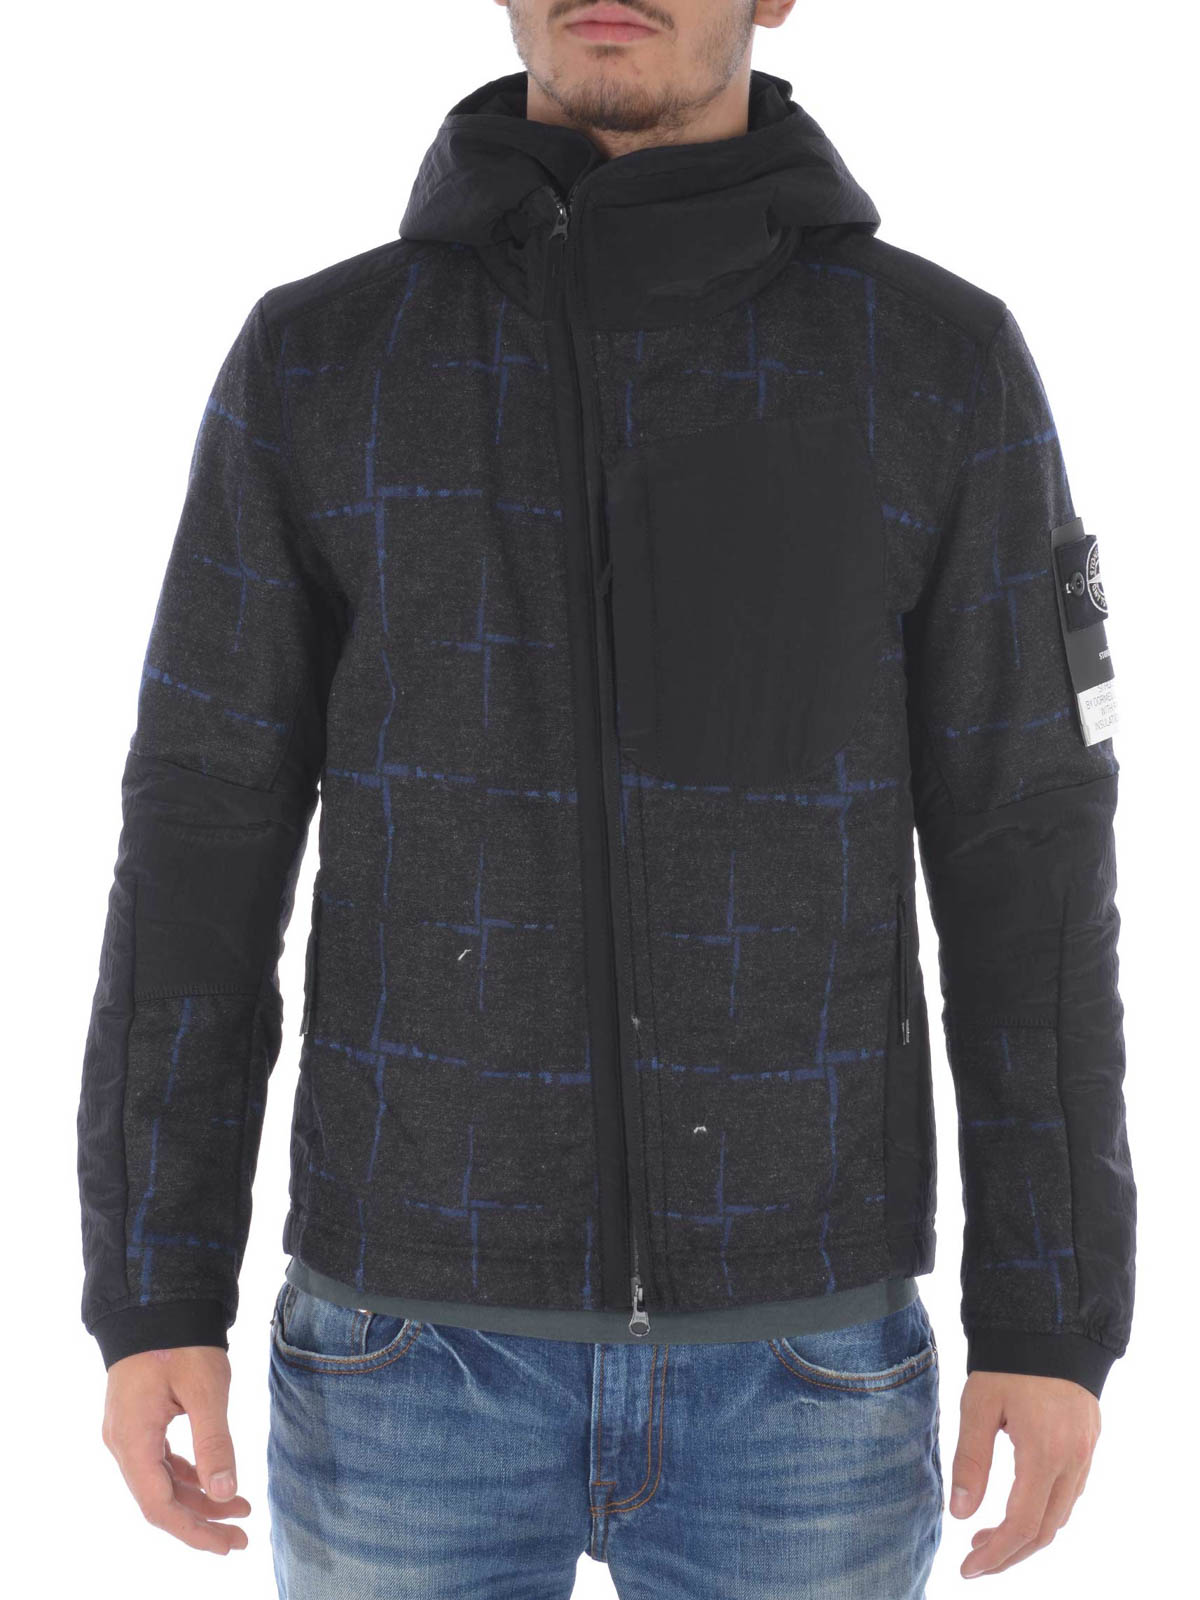 bomberjacke fur herren grau von stone island. Black Bedroom Furniture Sets. Home Design Ideas